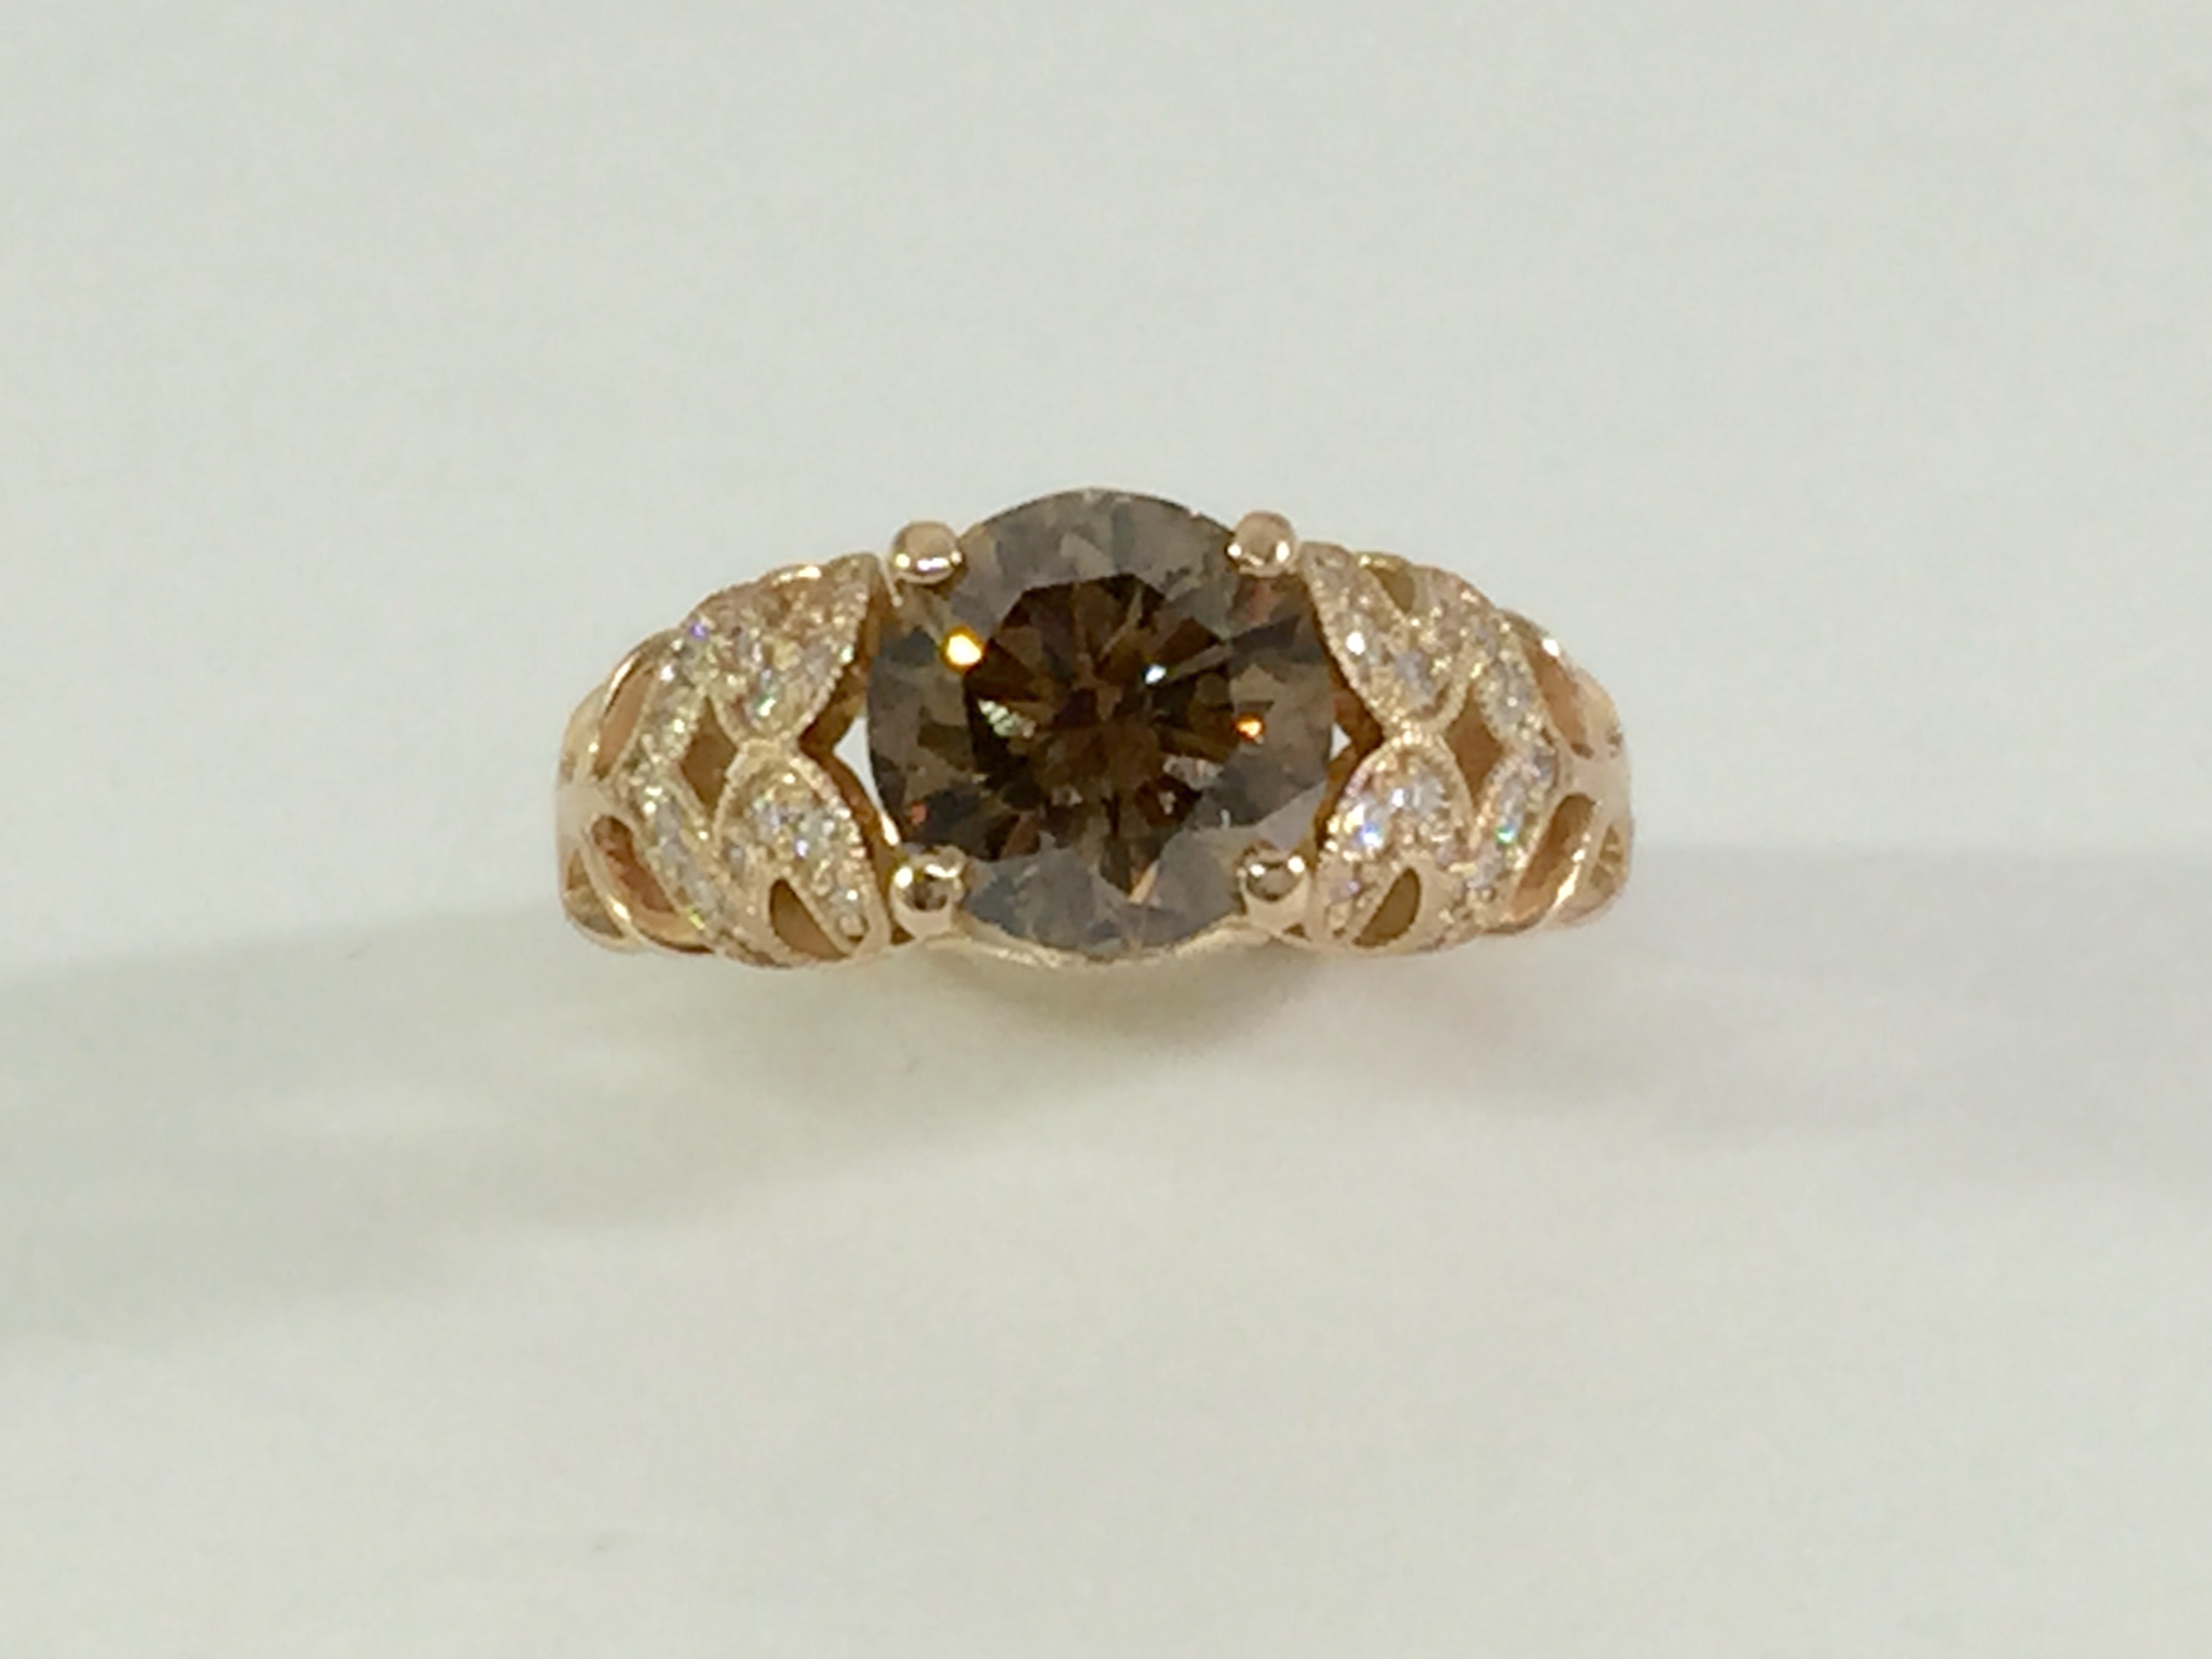 browndiamondpic1of3.jpg